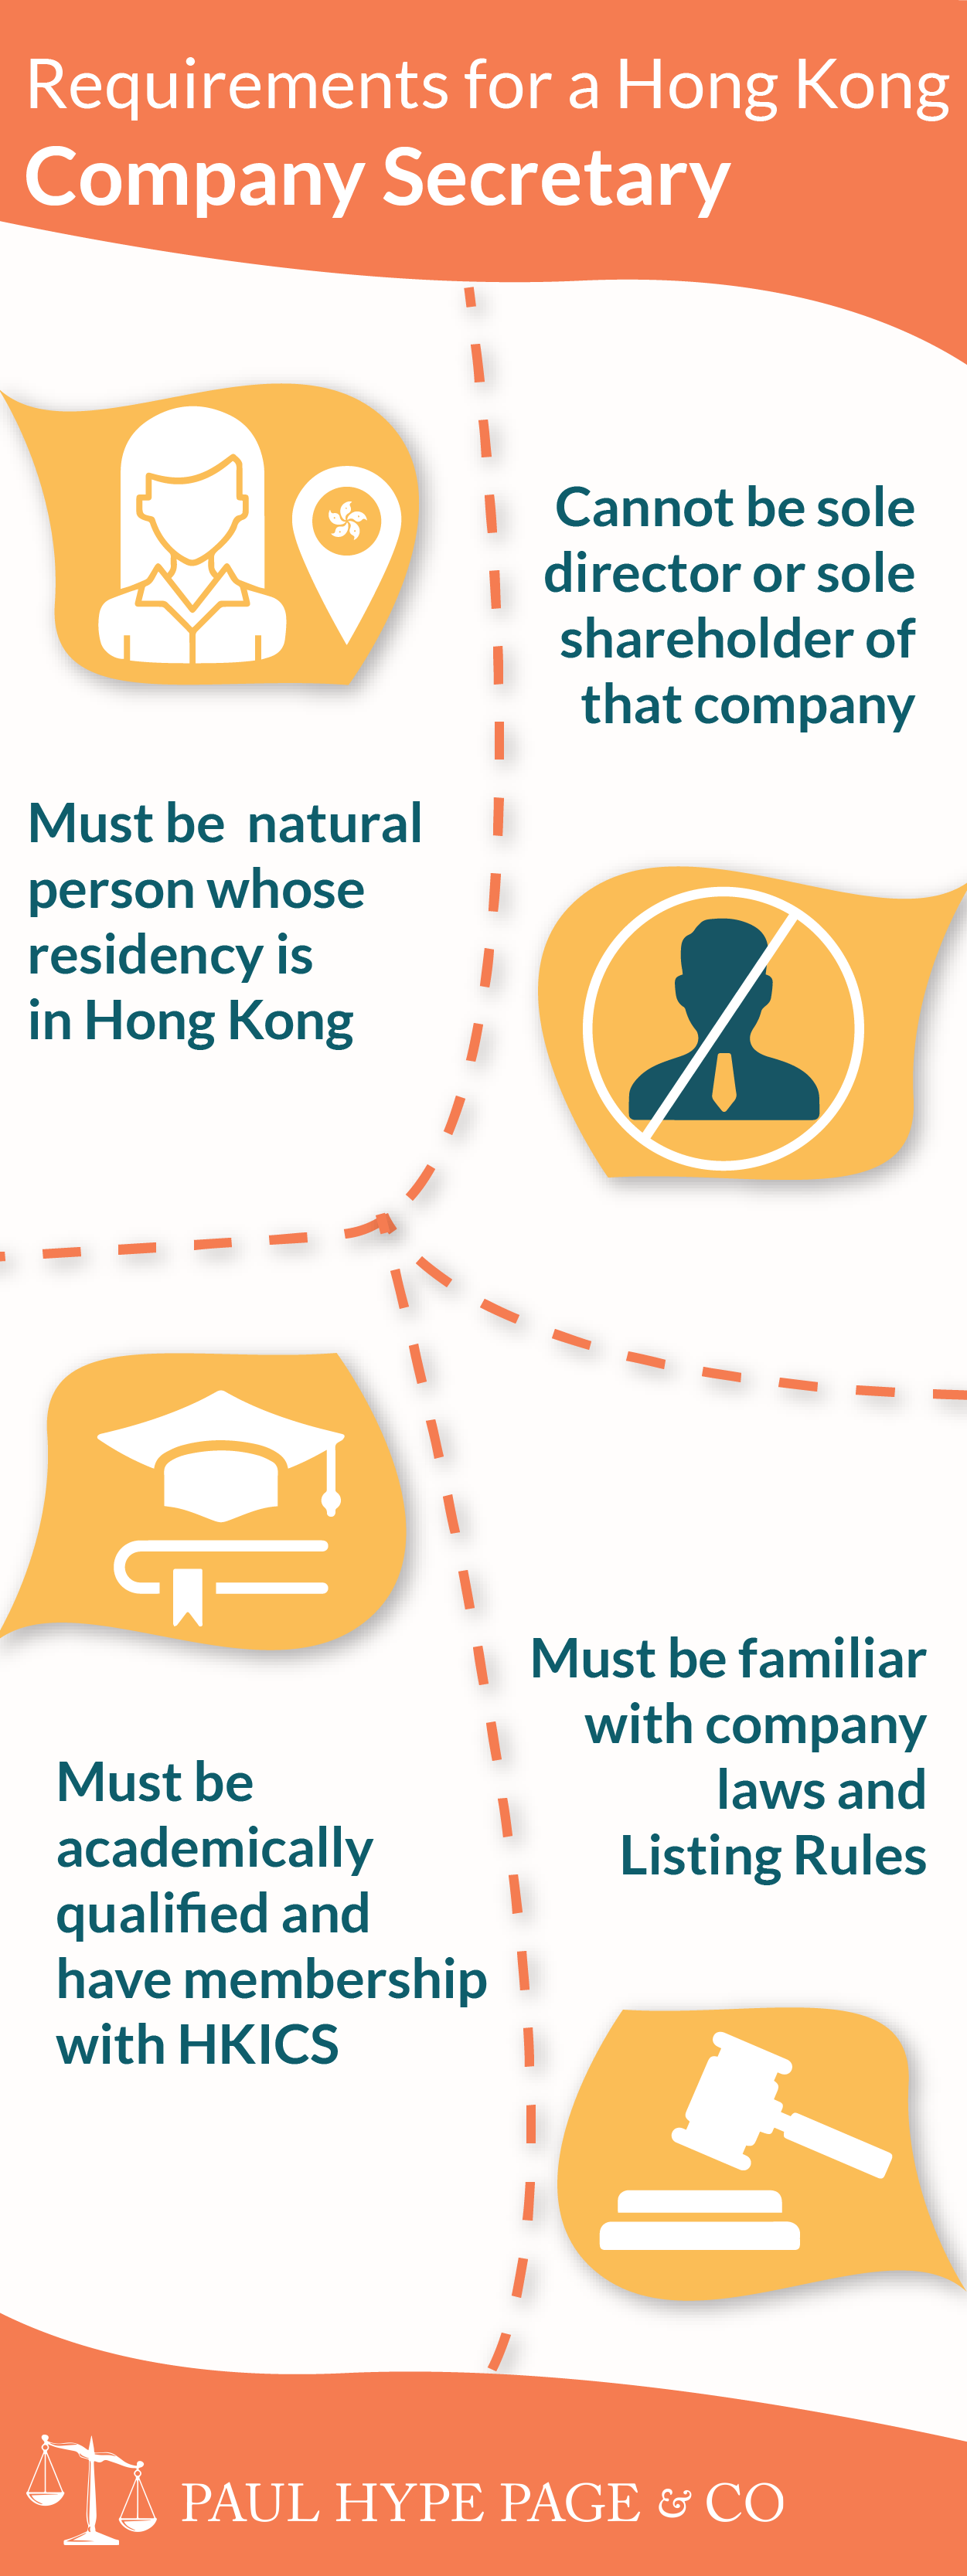 Requirements for a HK Company Secretary